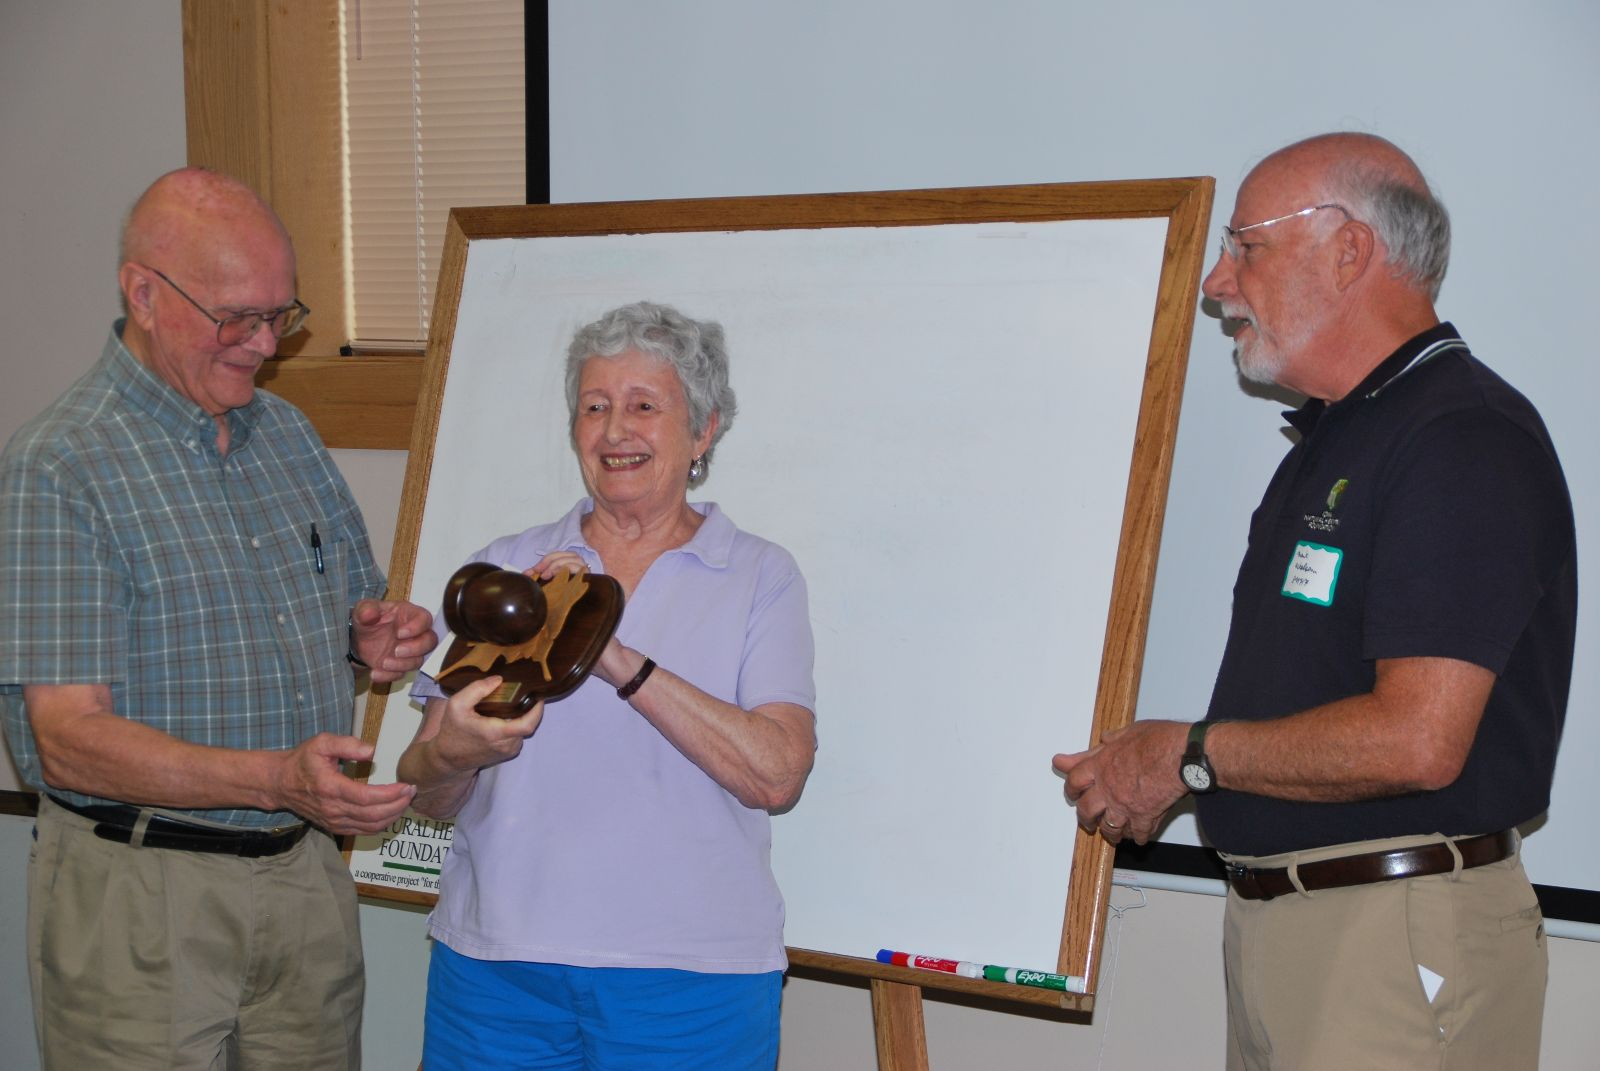 Bob and Mary Lou Gunderson, our 2012 Hagie Heritage Award recipients.